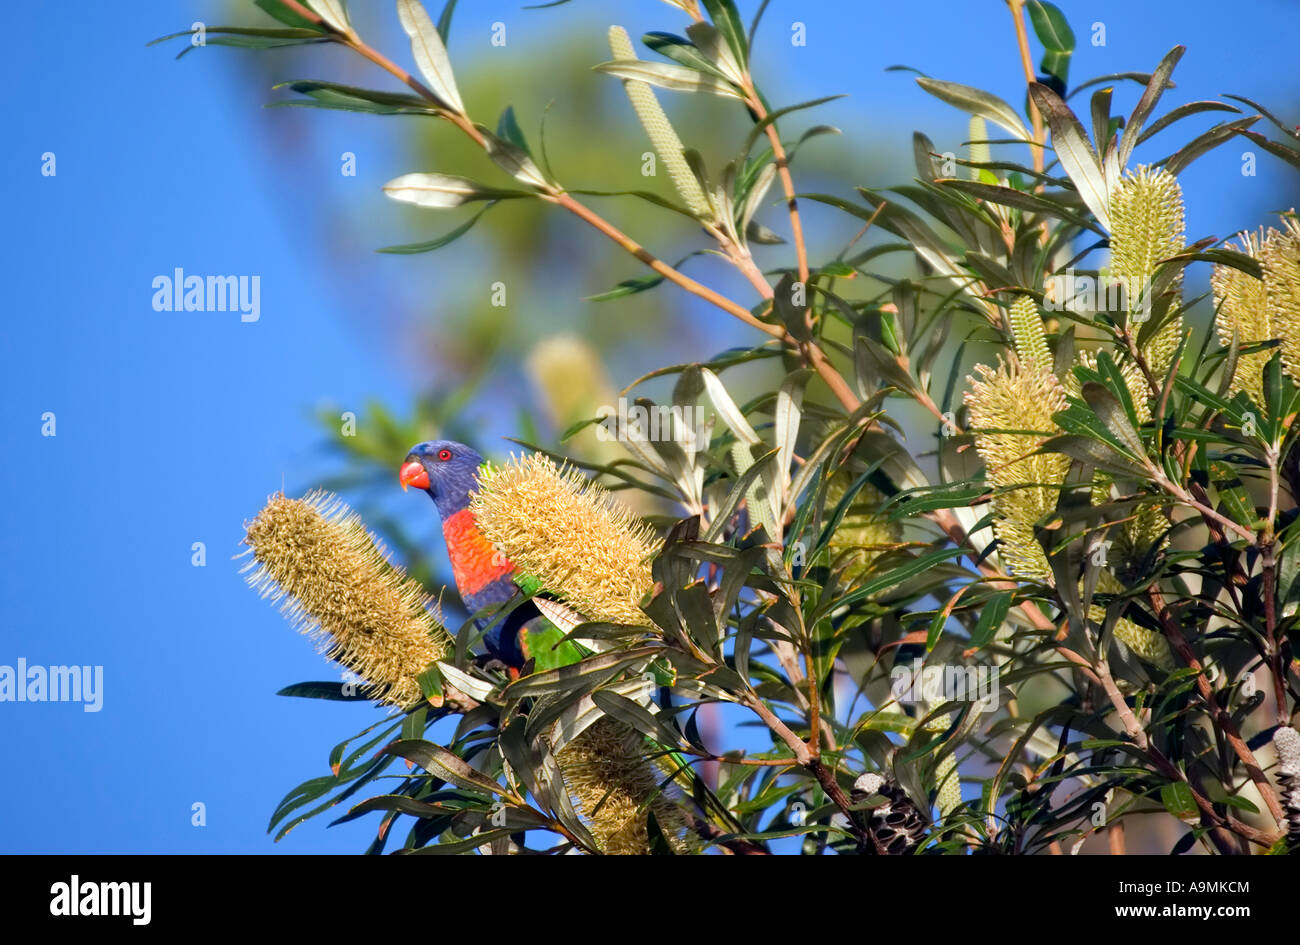 a rainbow lorikeet is eating from a large banksia flower - Stock Image